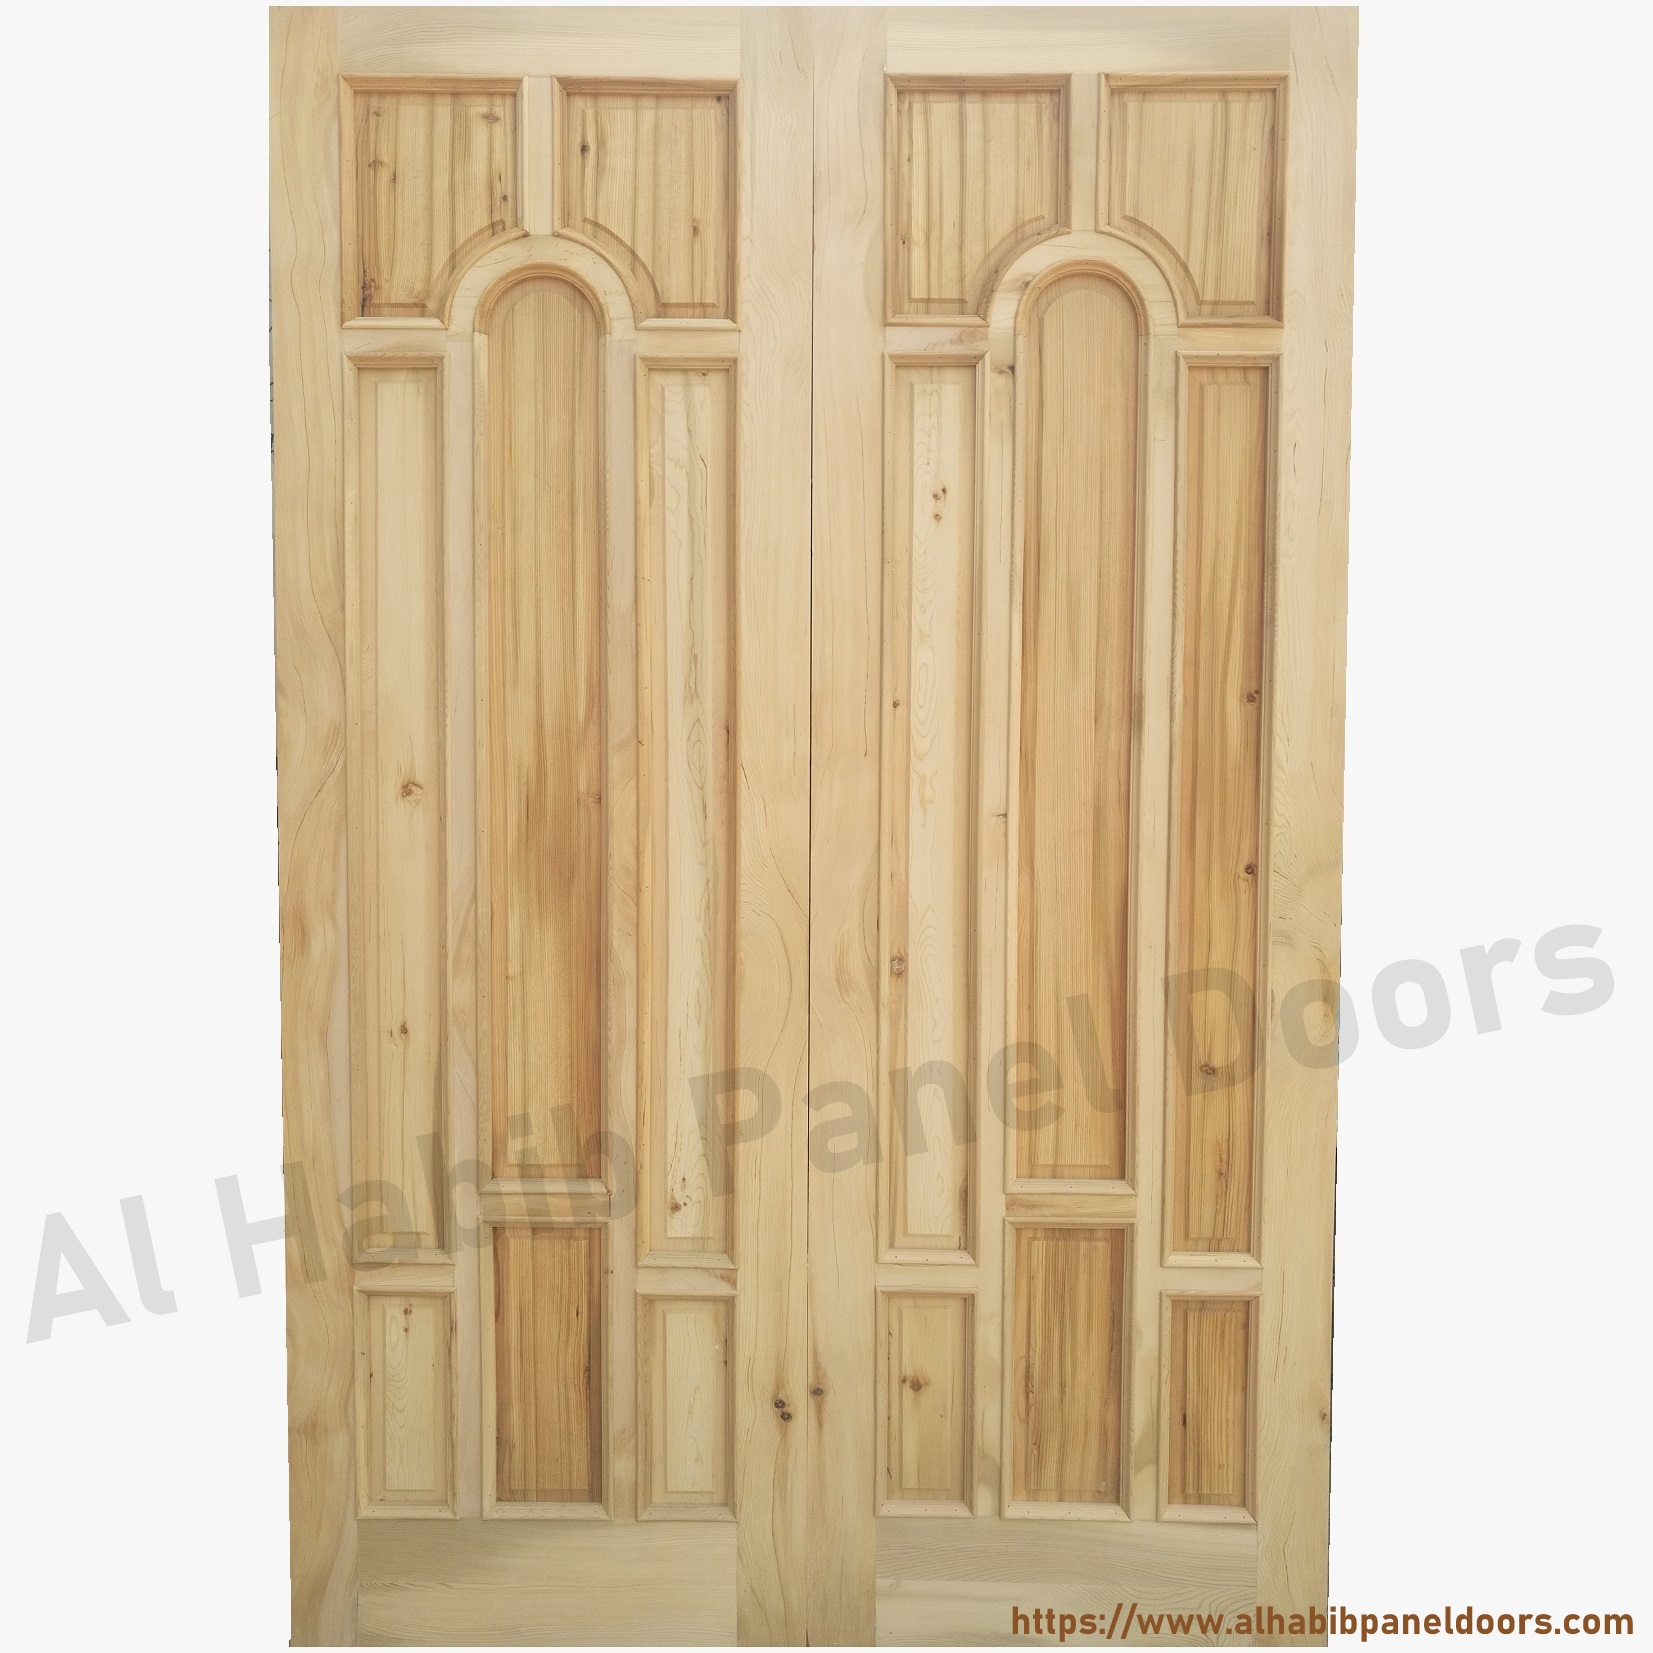 Main double door hpd329 main doors al habib panel doors for Main door design images